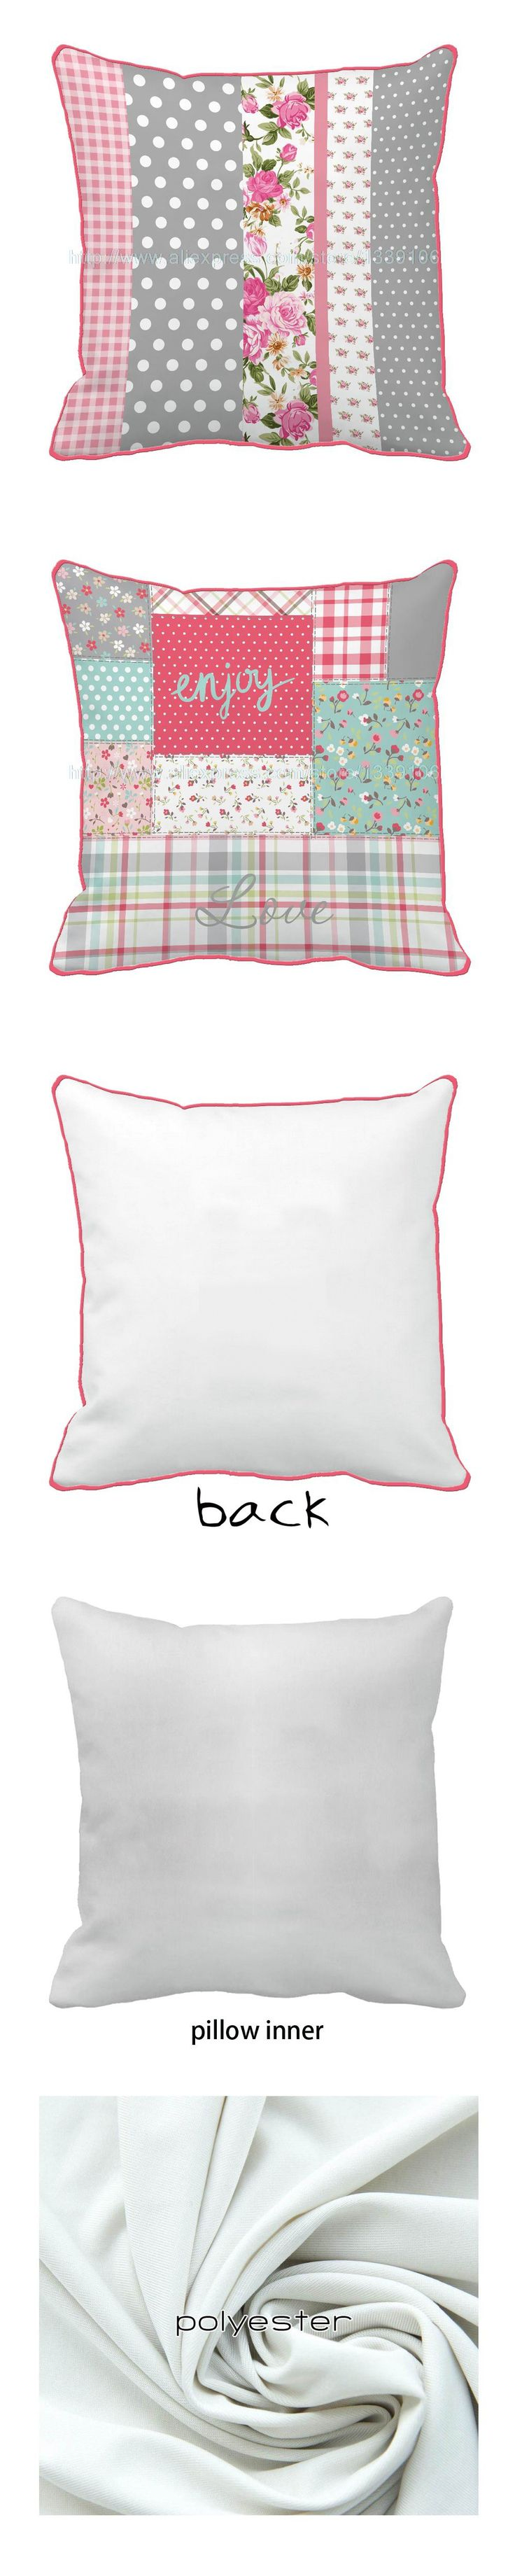 Best 25 Throw pillows for couch ideas on Pinterest